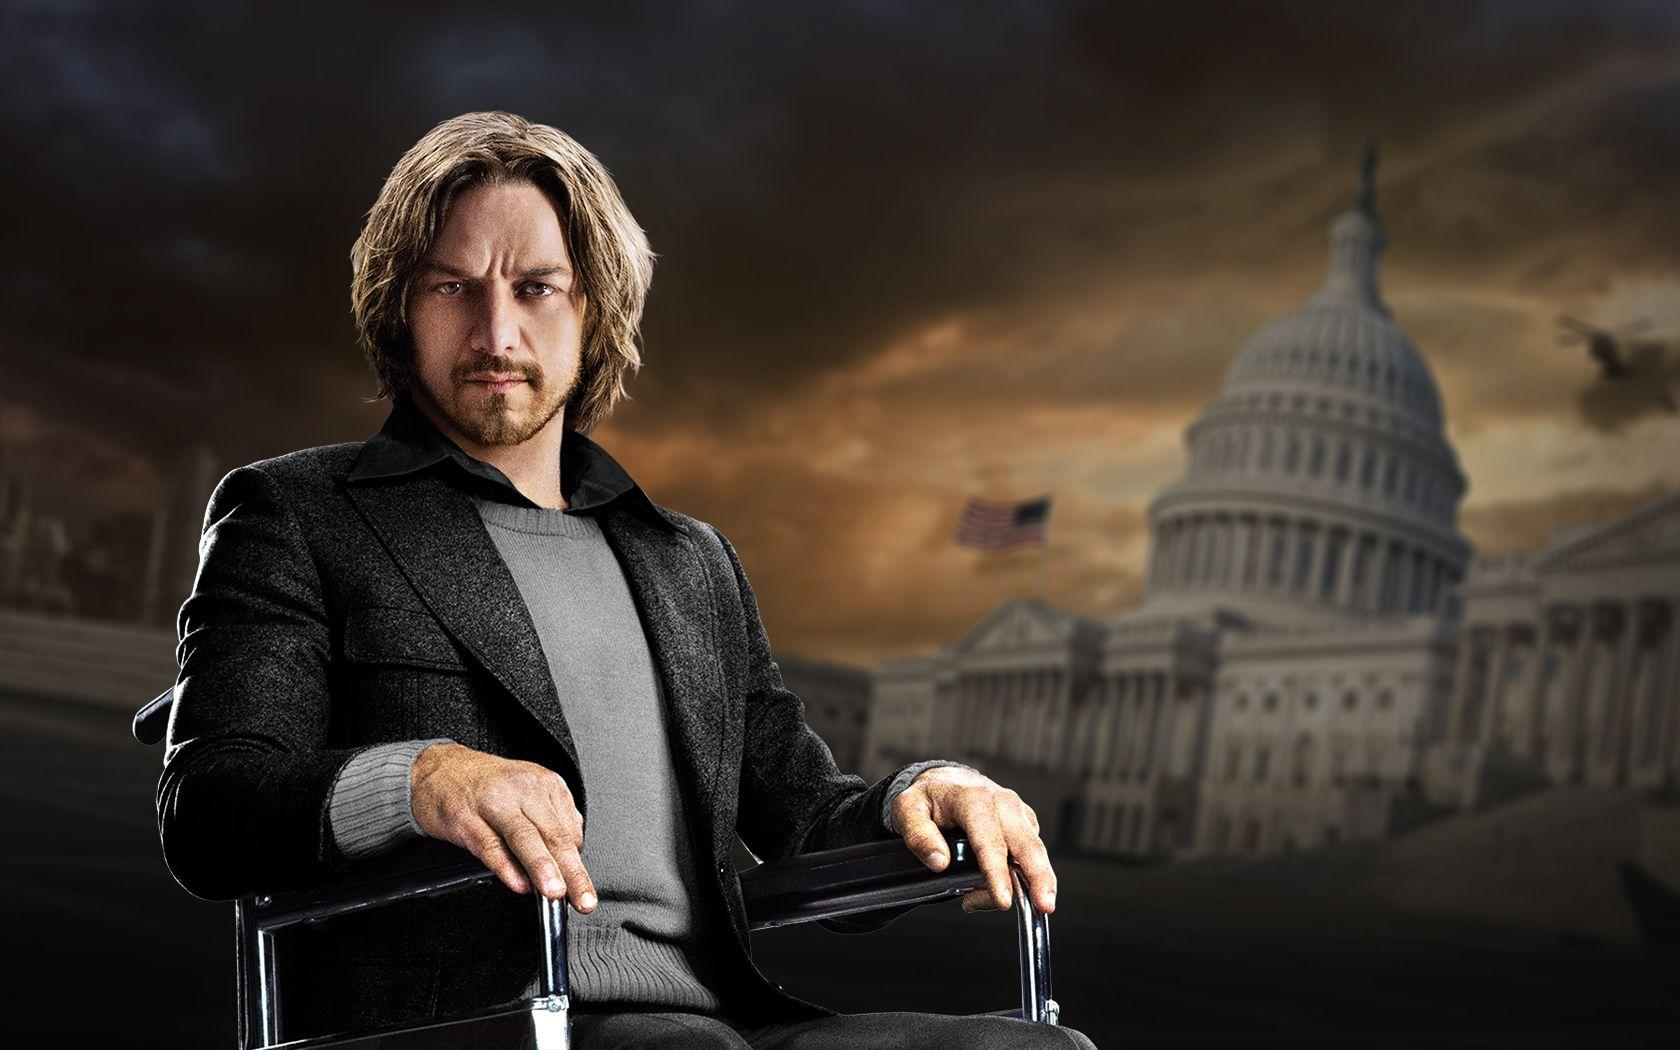 Young Professor Xavier Played By James McAvoy Wallpapers and